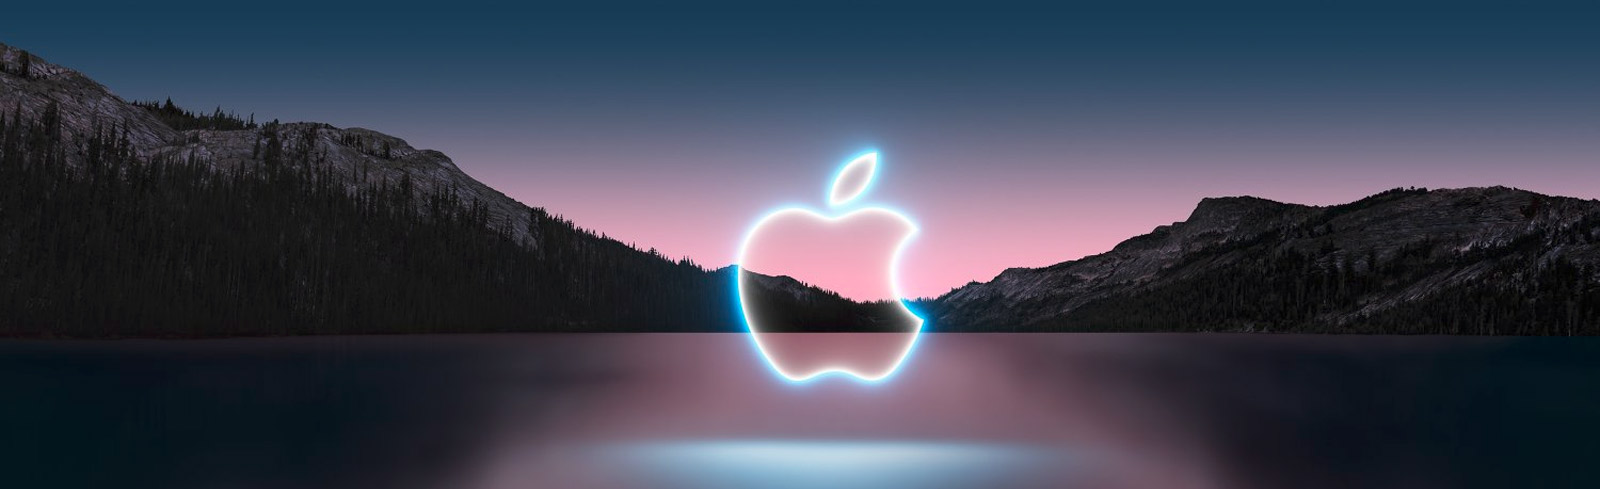 Apple event on September 14 announced, iPhone 13 series expected